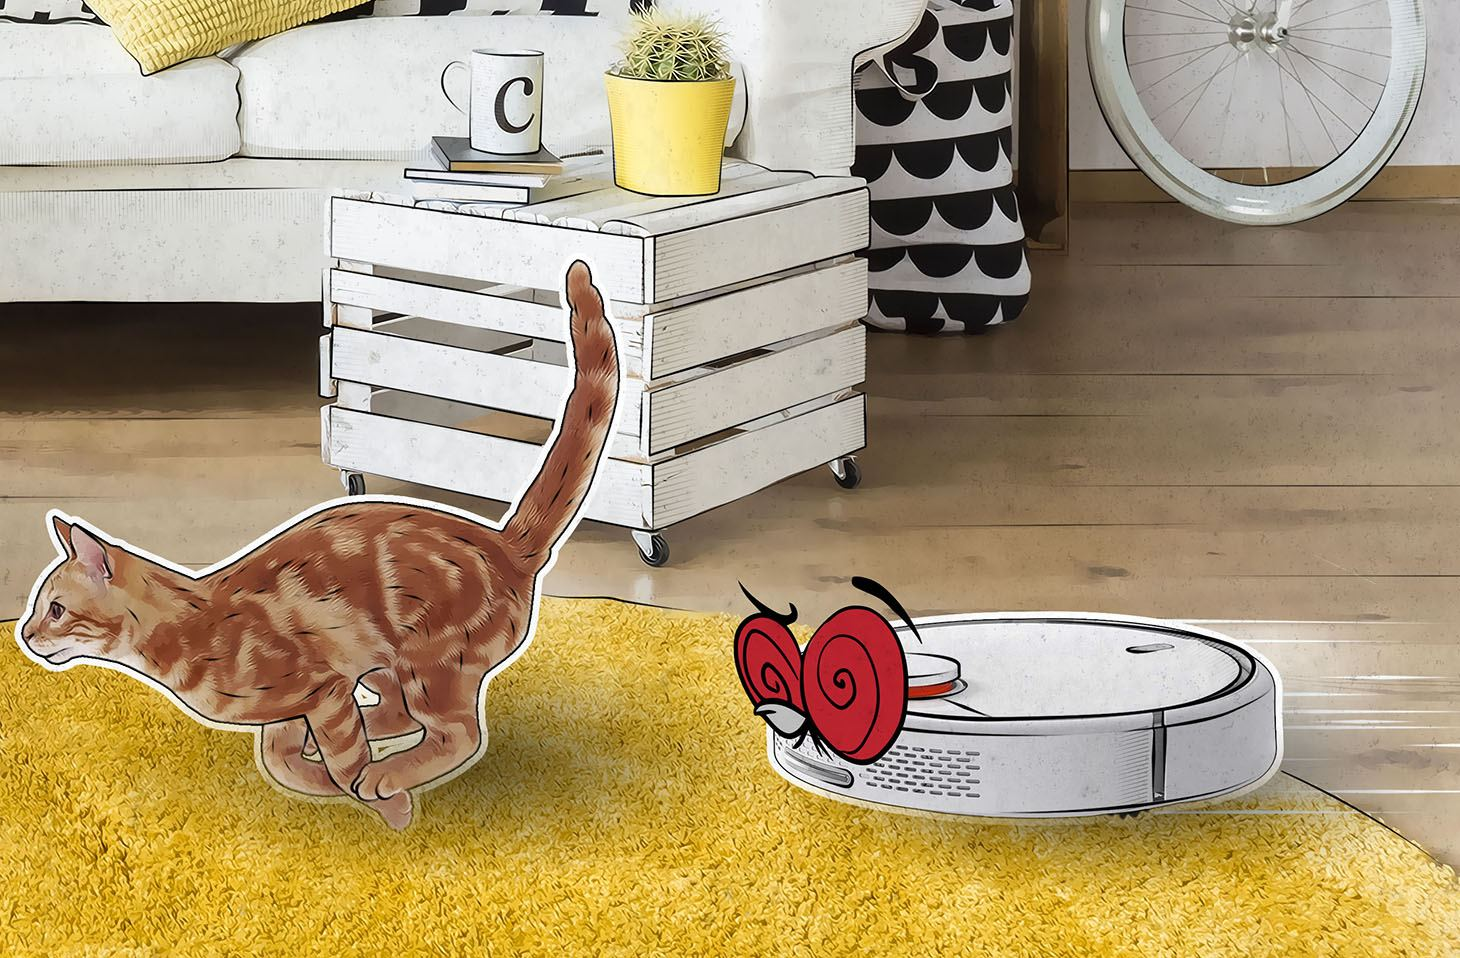 Xiaomi Mi Robot vacuum cleaner hacked | Kaspersky official blog